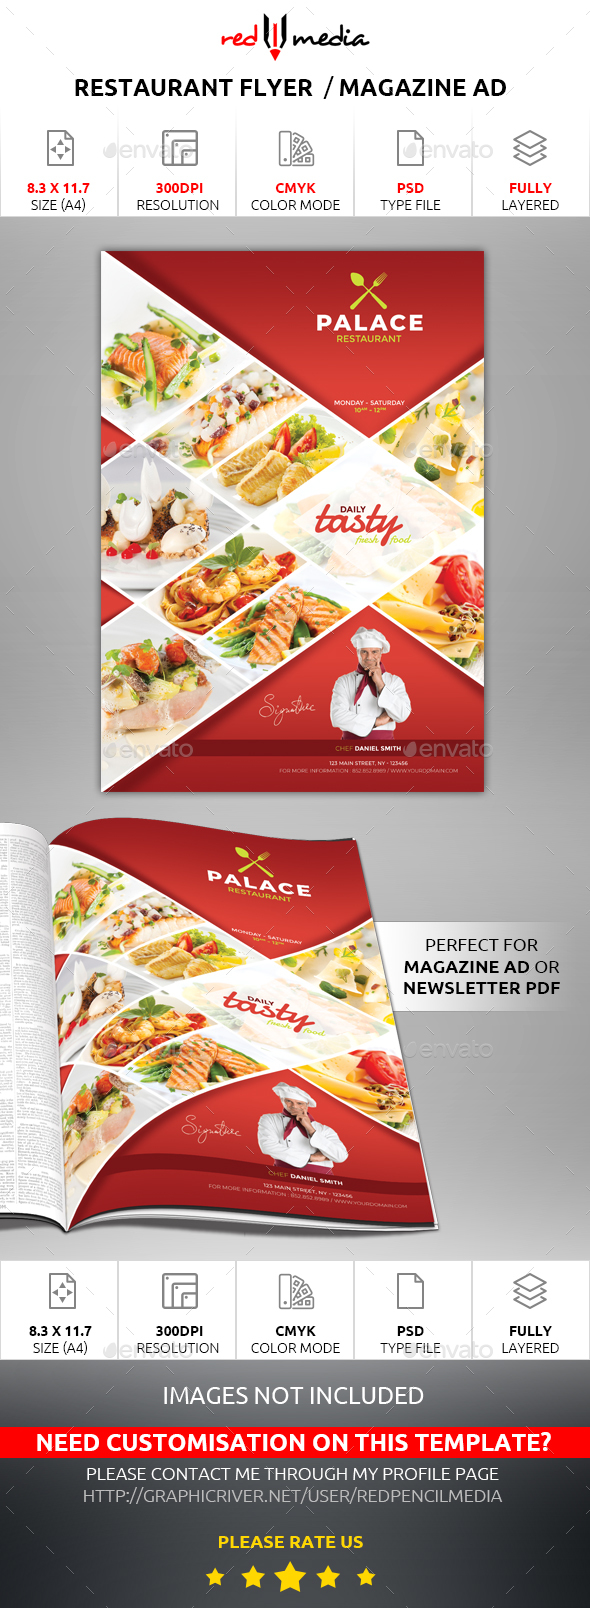 Restaurant Flyer / Magazine AD - Restaurant Flyers